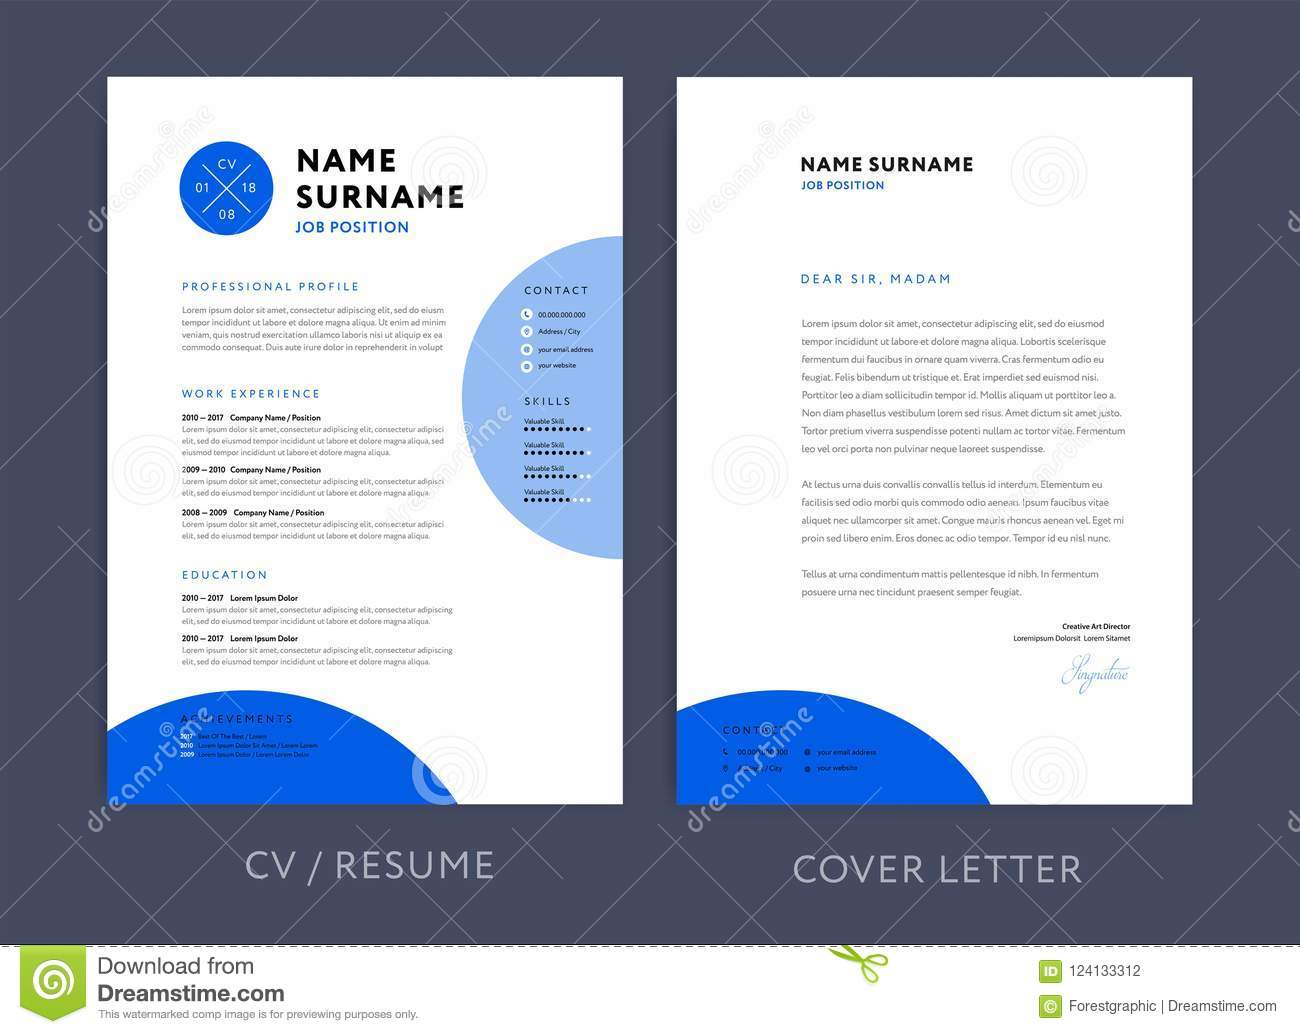 Professional Cv Resume Template Blue Design And Letterhead Cover